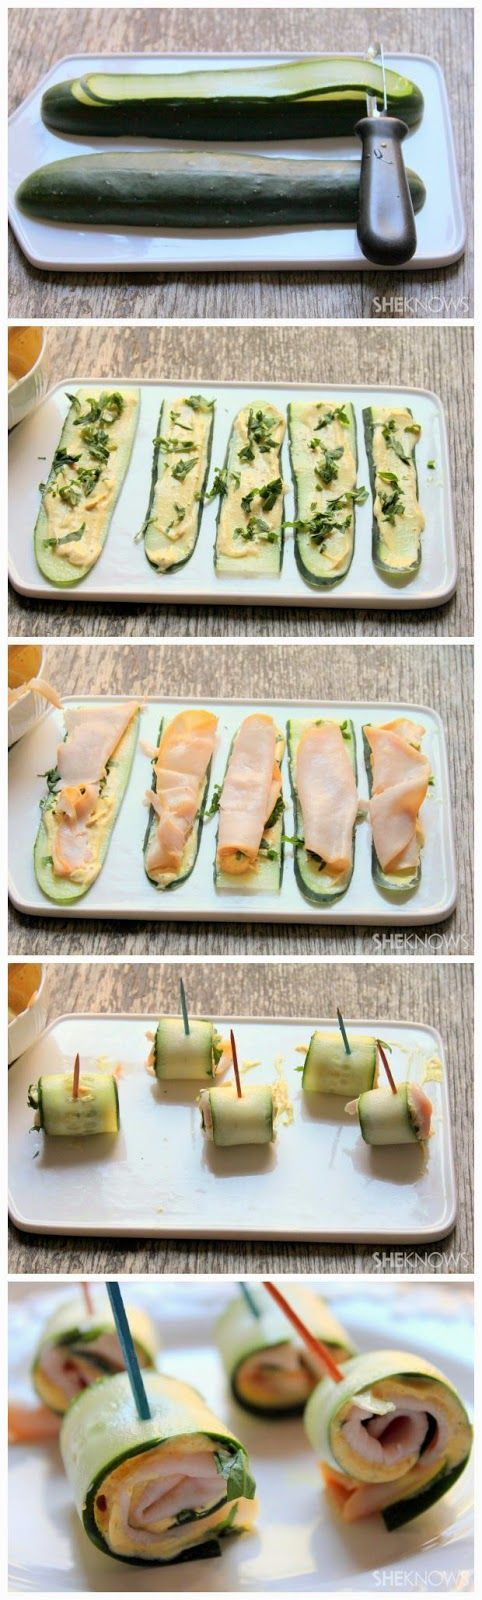 "Good Snack Ideas ♥ Easy Snack Foods ""Sick of boring work lunches? Pack these Cucumber roll-ups with hummus and turkey or replace it with smoked salmon and cream cheese."""